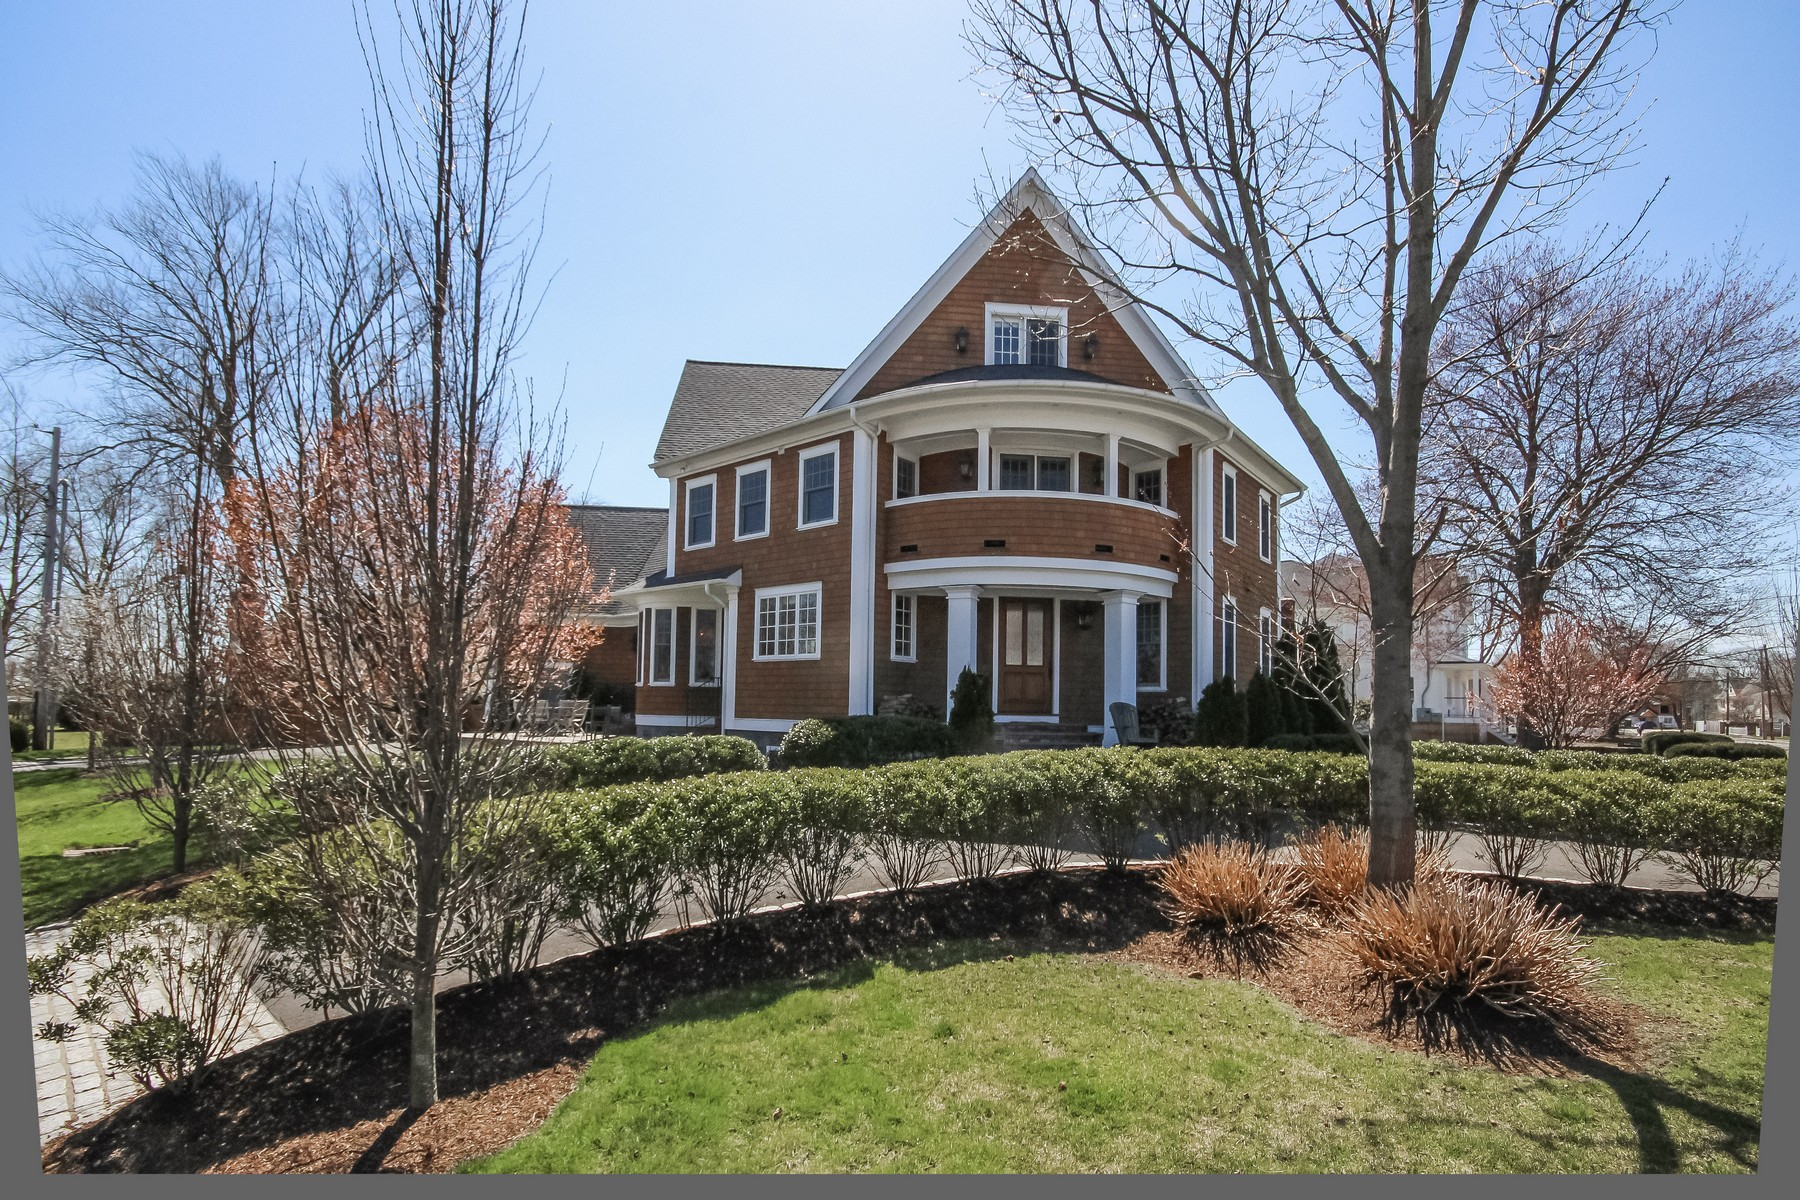 Single Family Home for Sale at BEACH HOUSE 634 South Benson Road Fairfield, Connecticut, 06824 United States